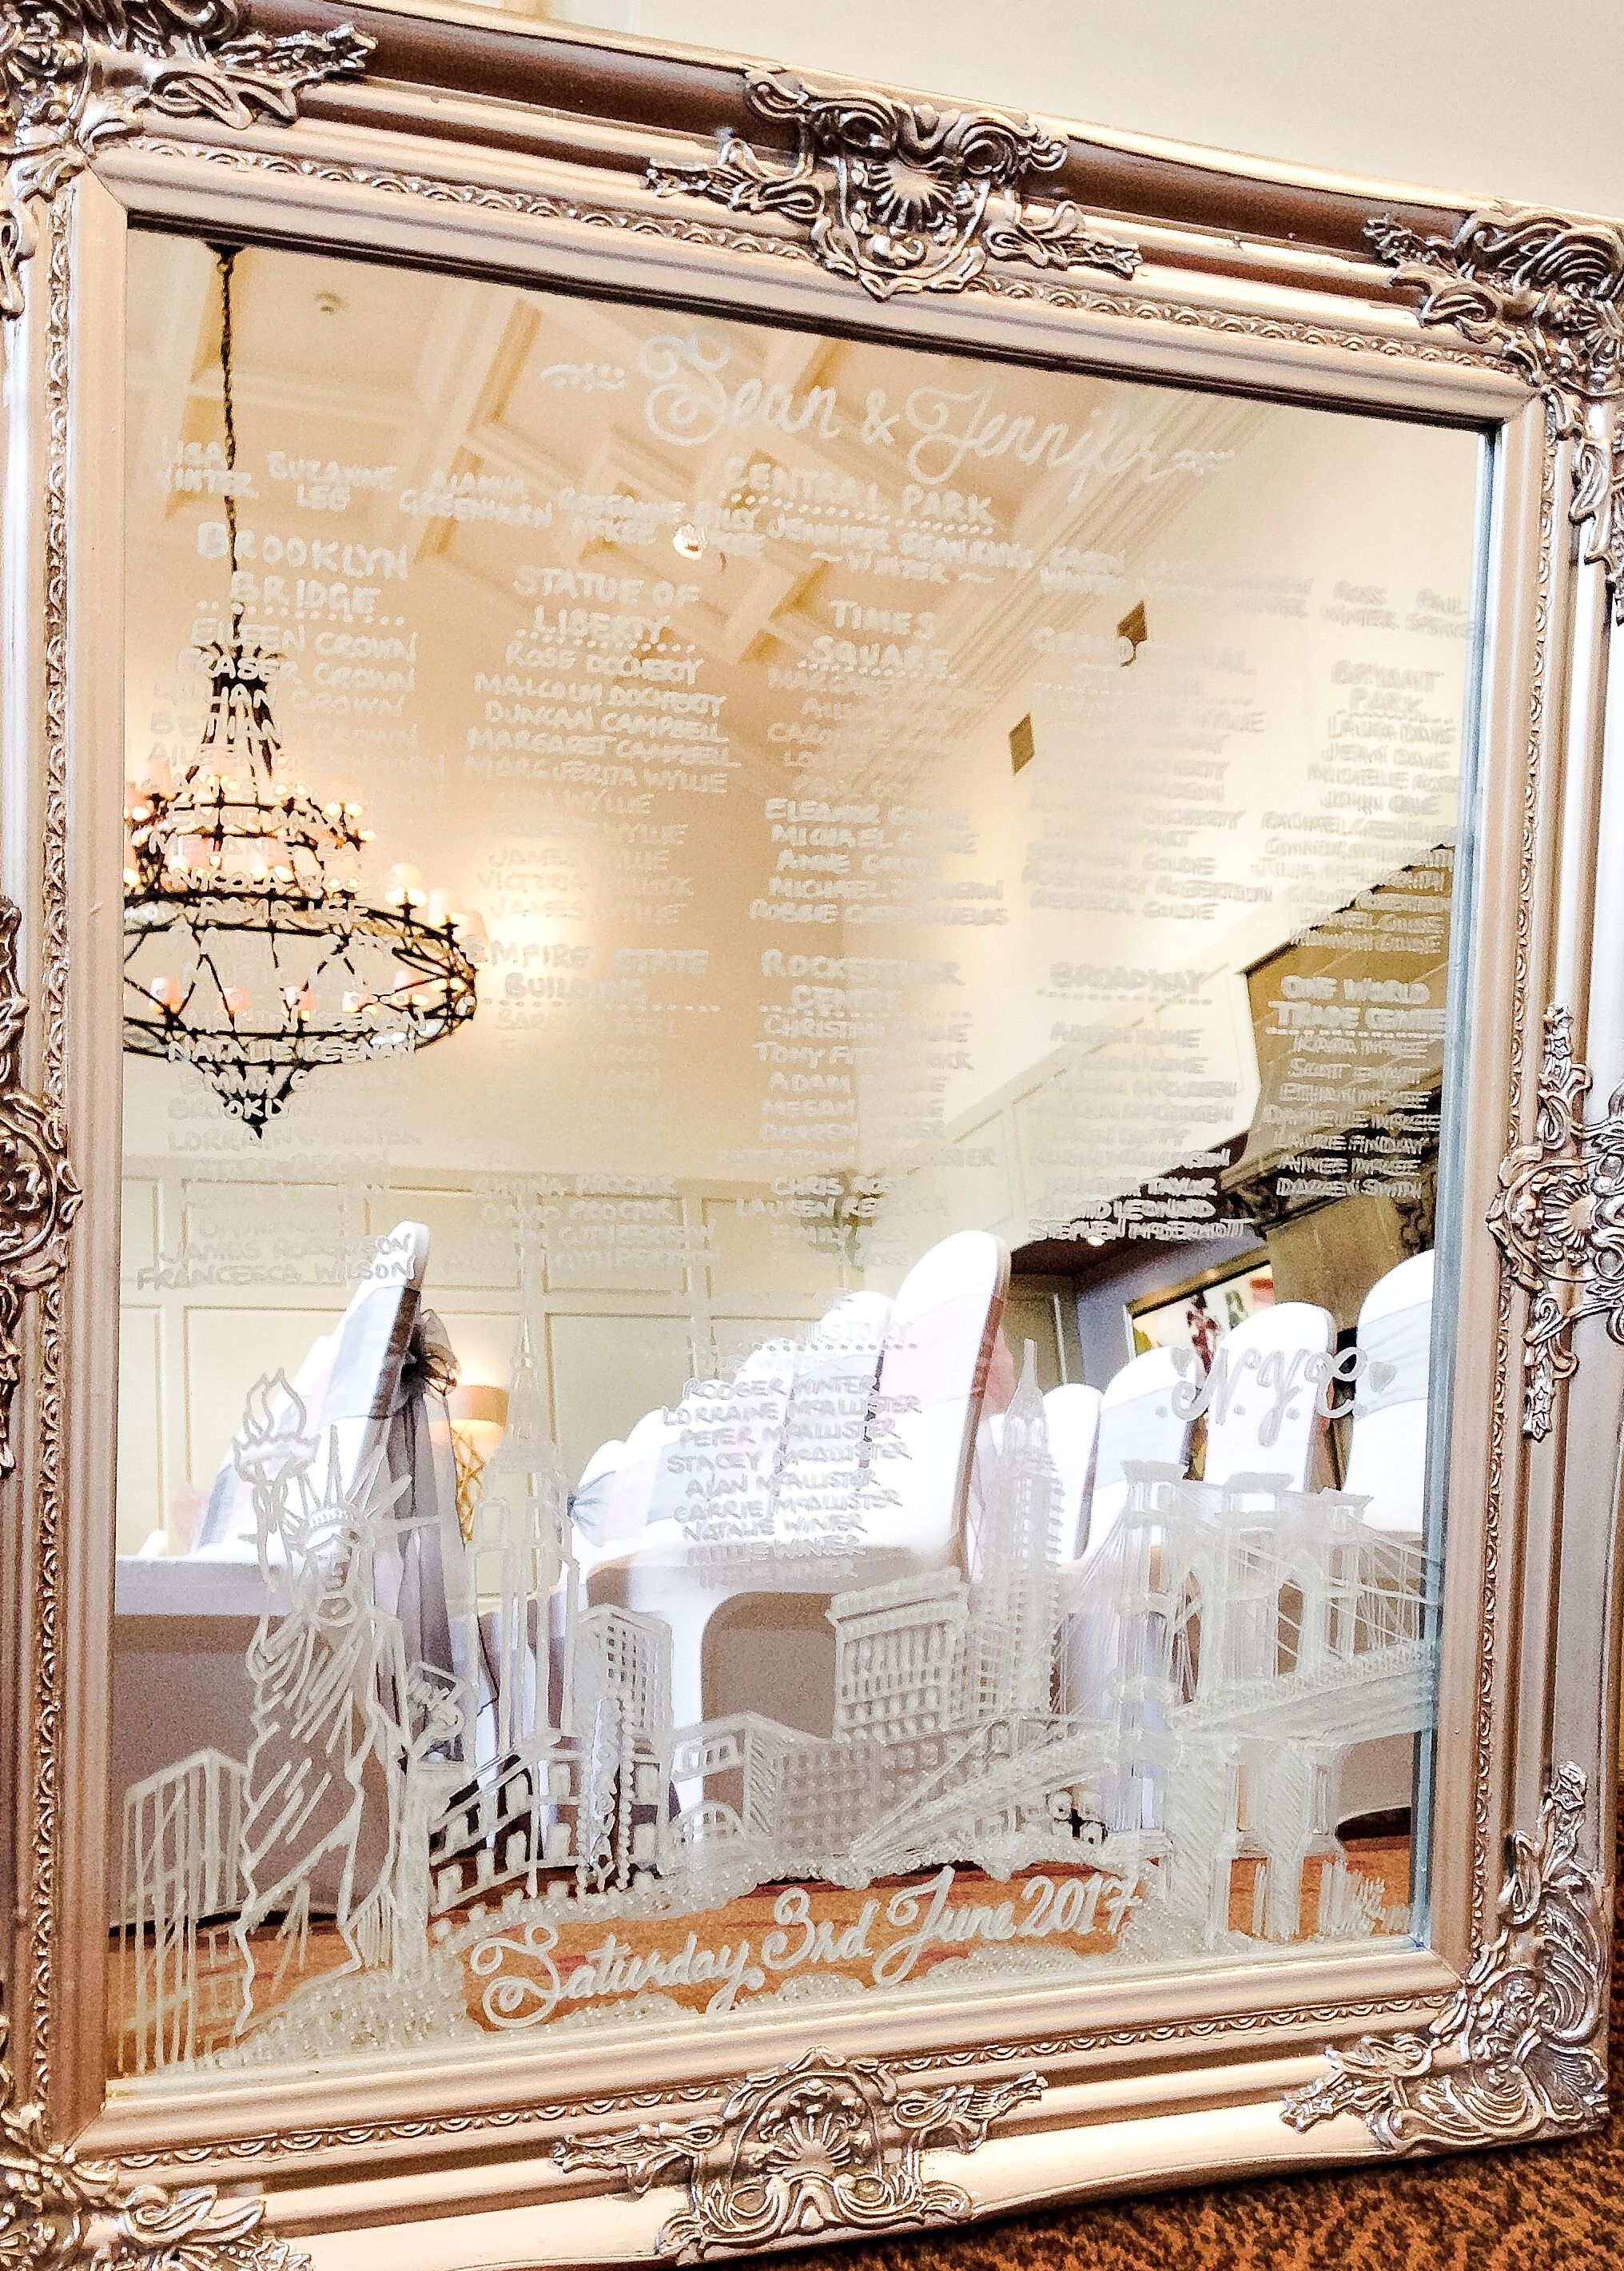 Chair Covers And More Norfolk Hanging Ikea New York Table Plan Mirror Hand Drawn Marvellous Wedding